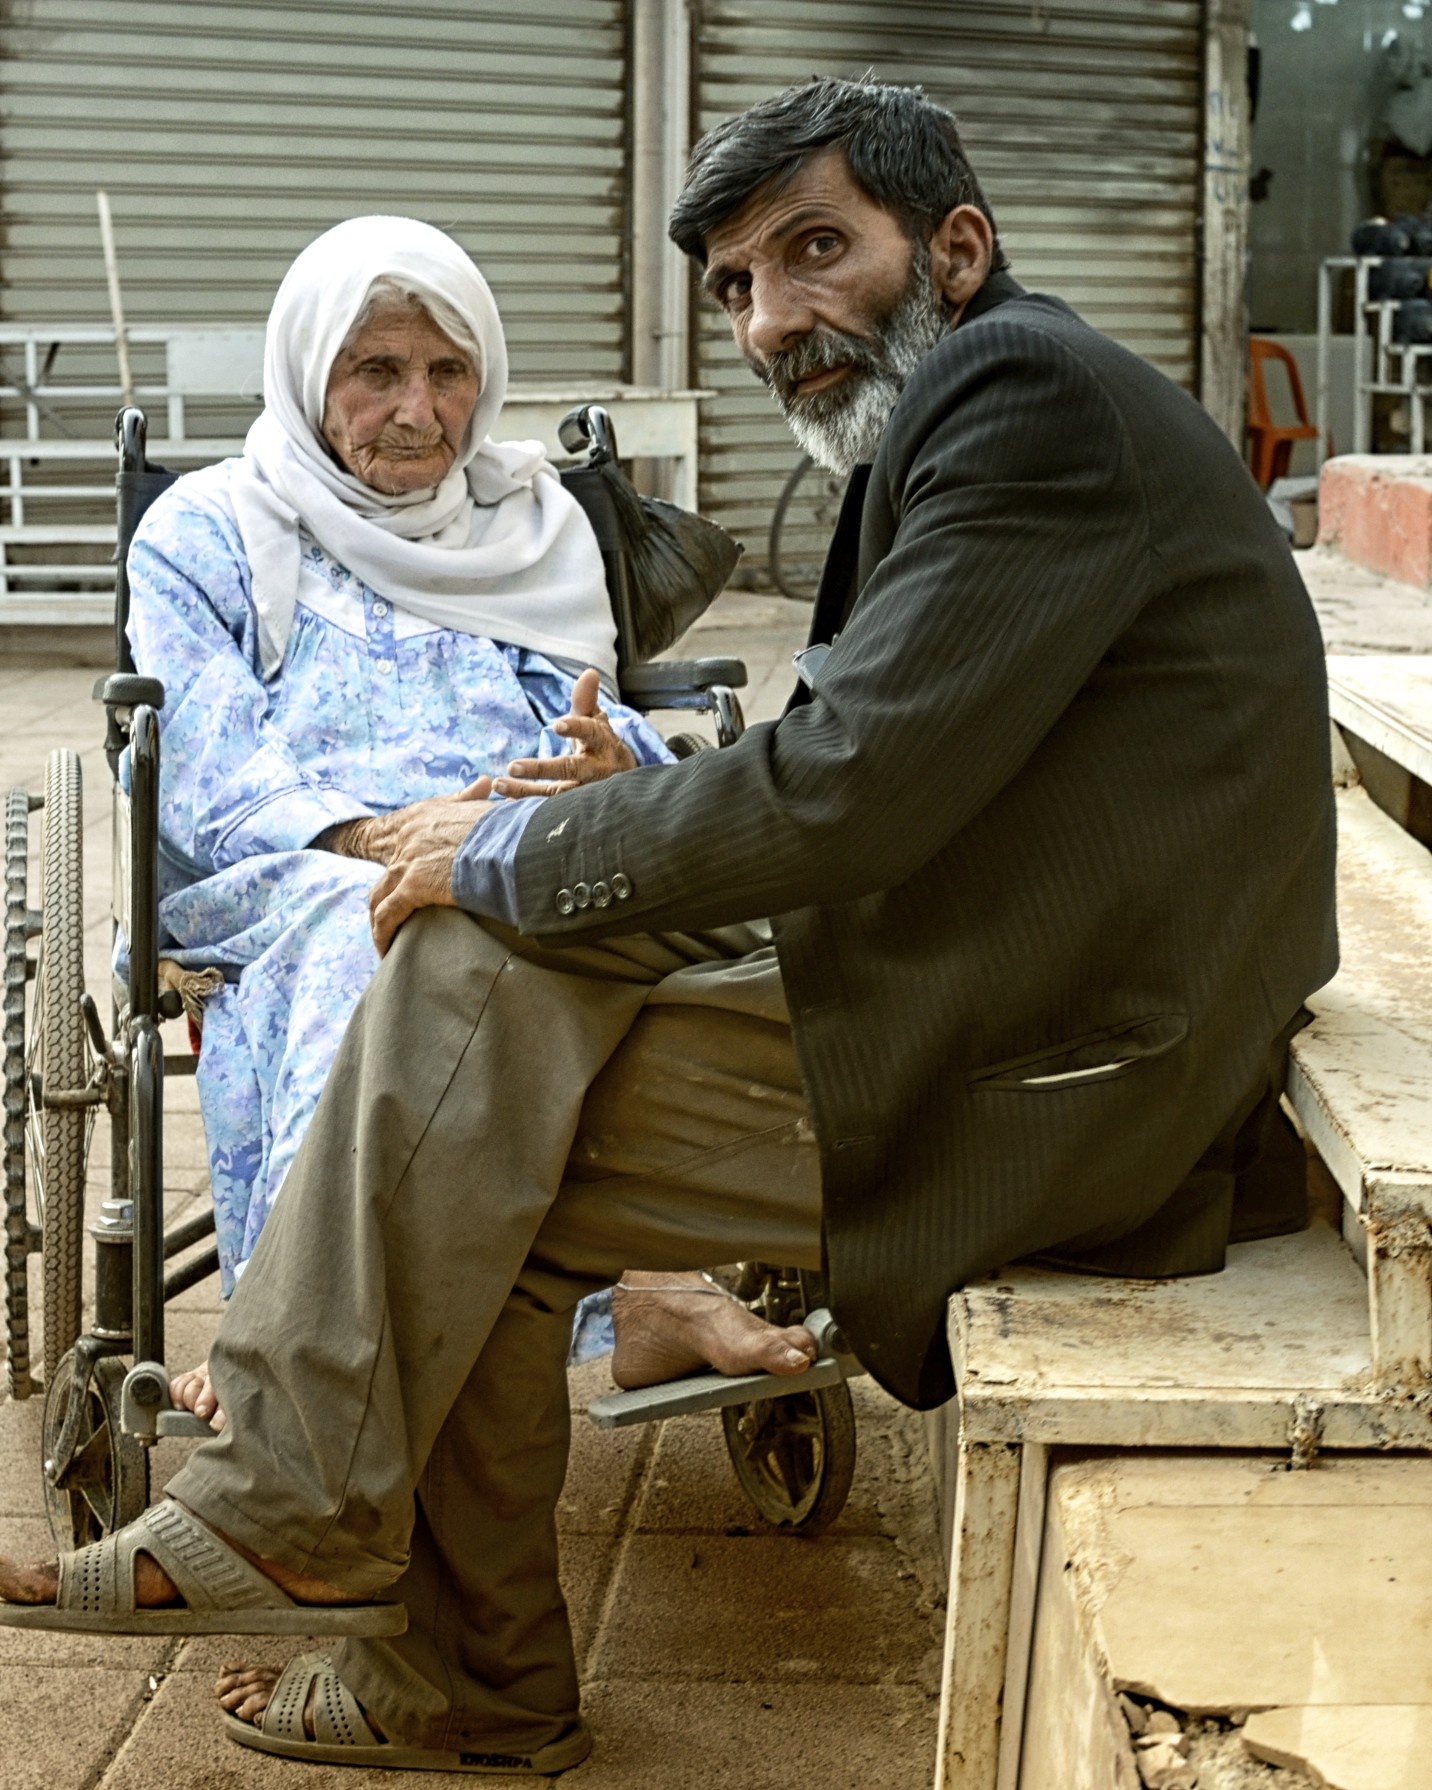 pensioners looking on in erbil.jpg